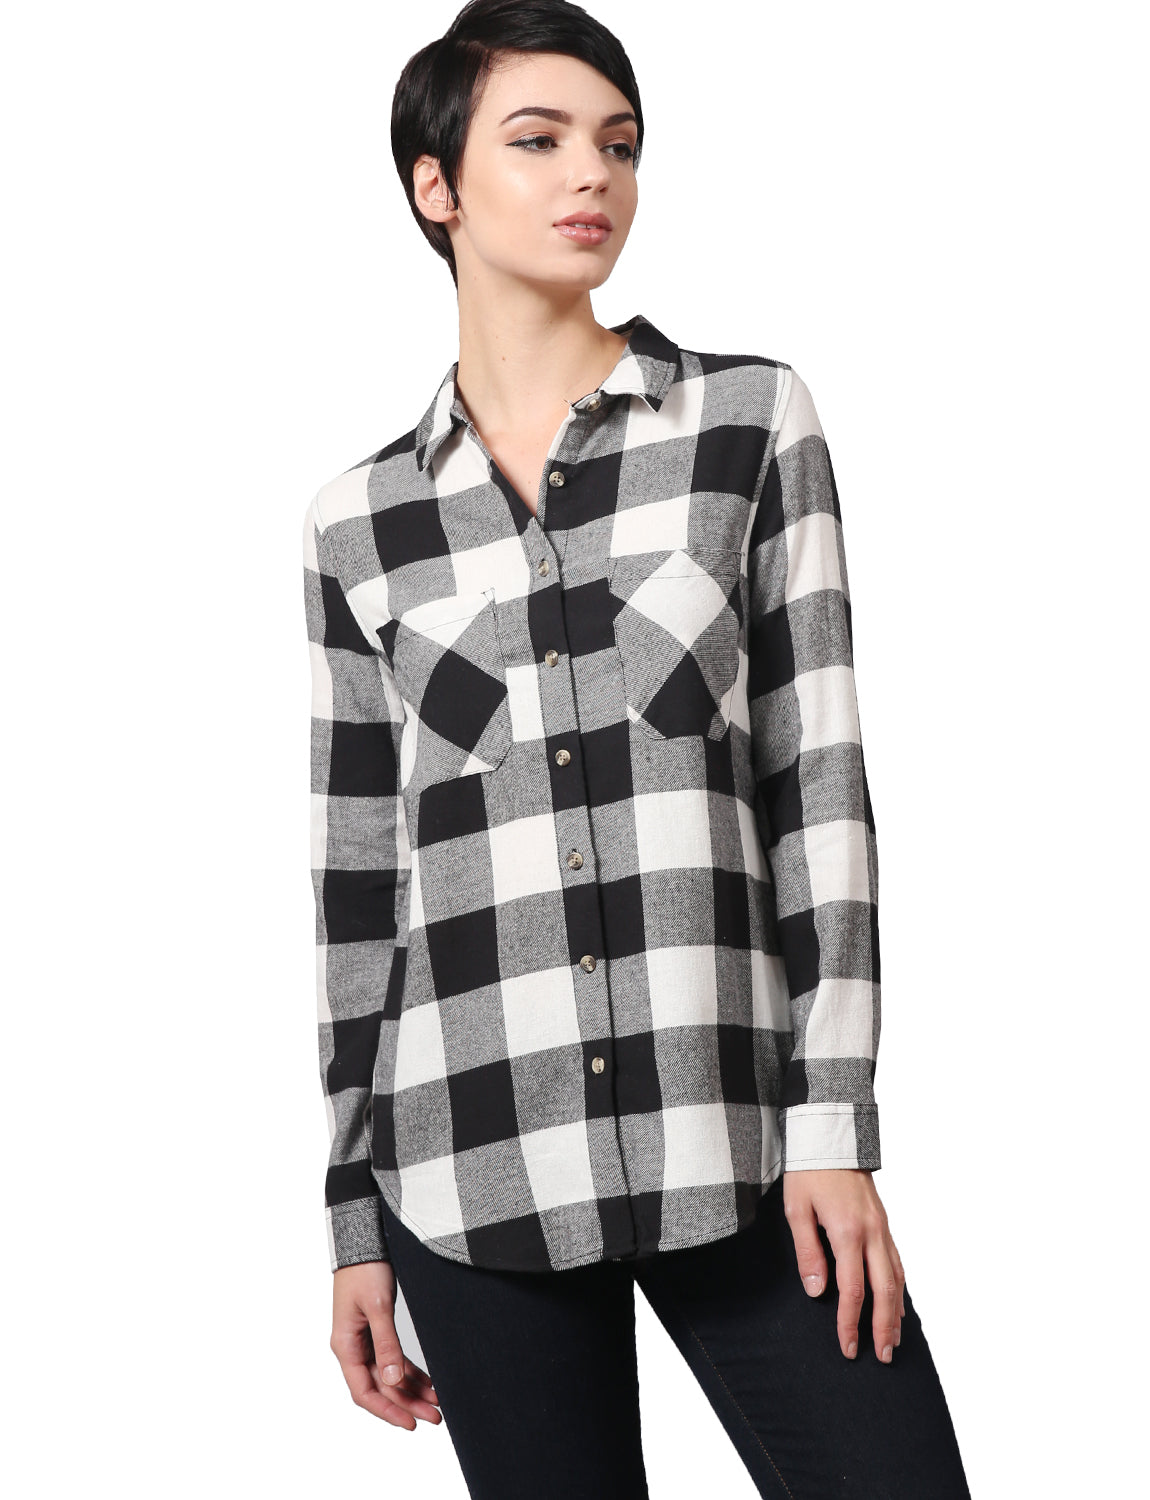 52736e46944 LONG SLEEVE FLANNEL CHECK PLAID SHIRTS DRESS WITH BELT NEWT292